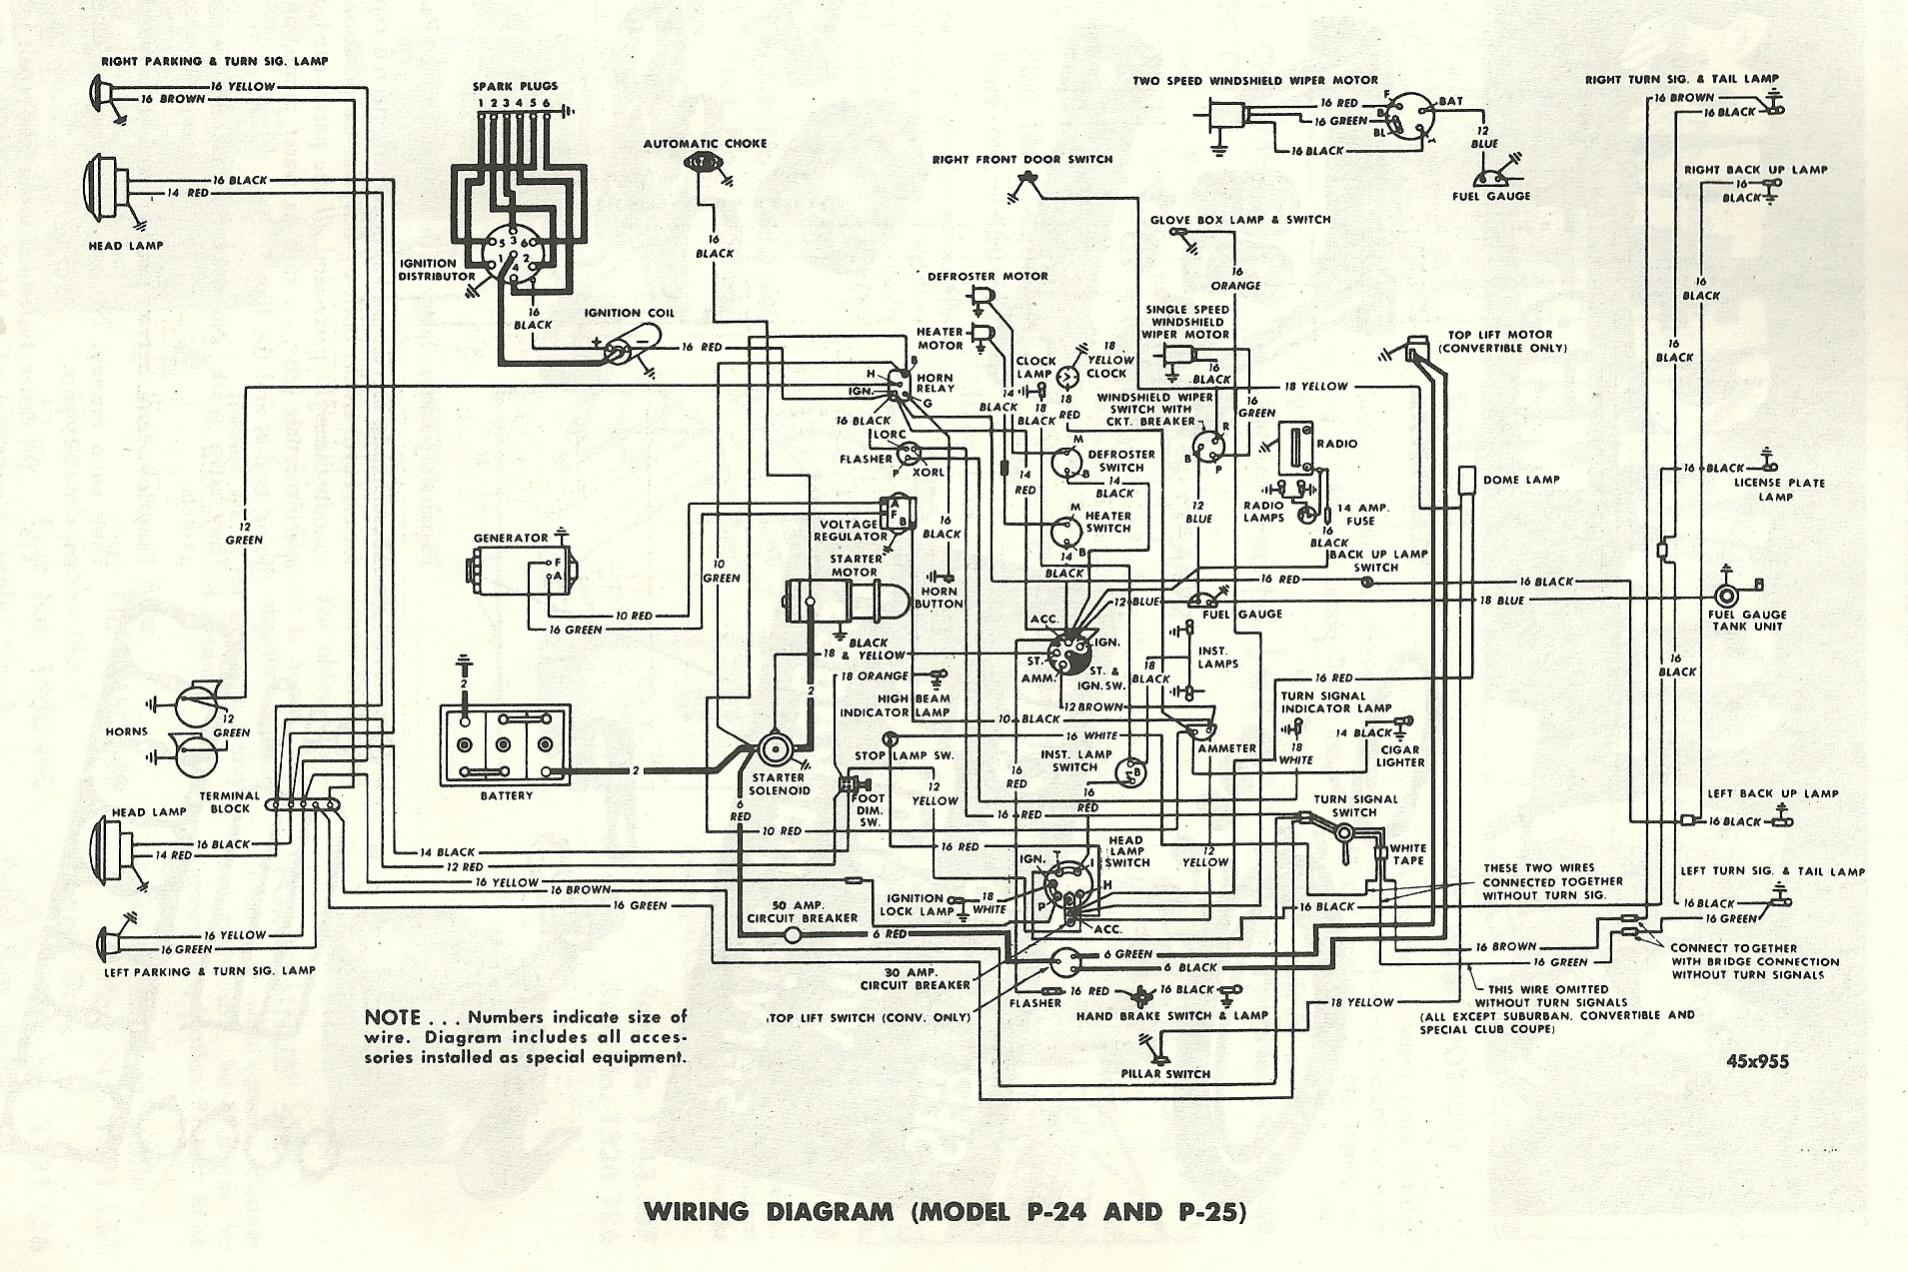 1951 plymouth wiring diagram trusted wiring diagram u2022 rh soulmatestyle co 1951 plymouth cranbrook wiring diagram